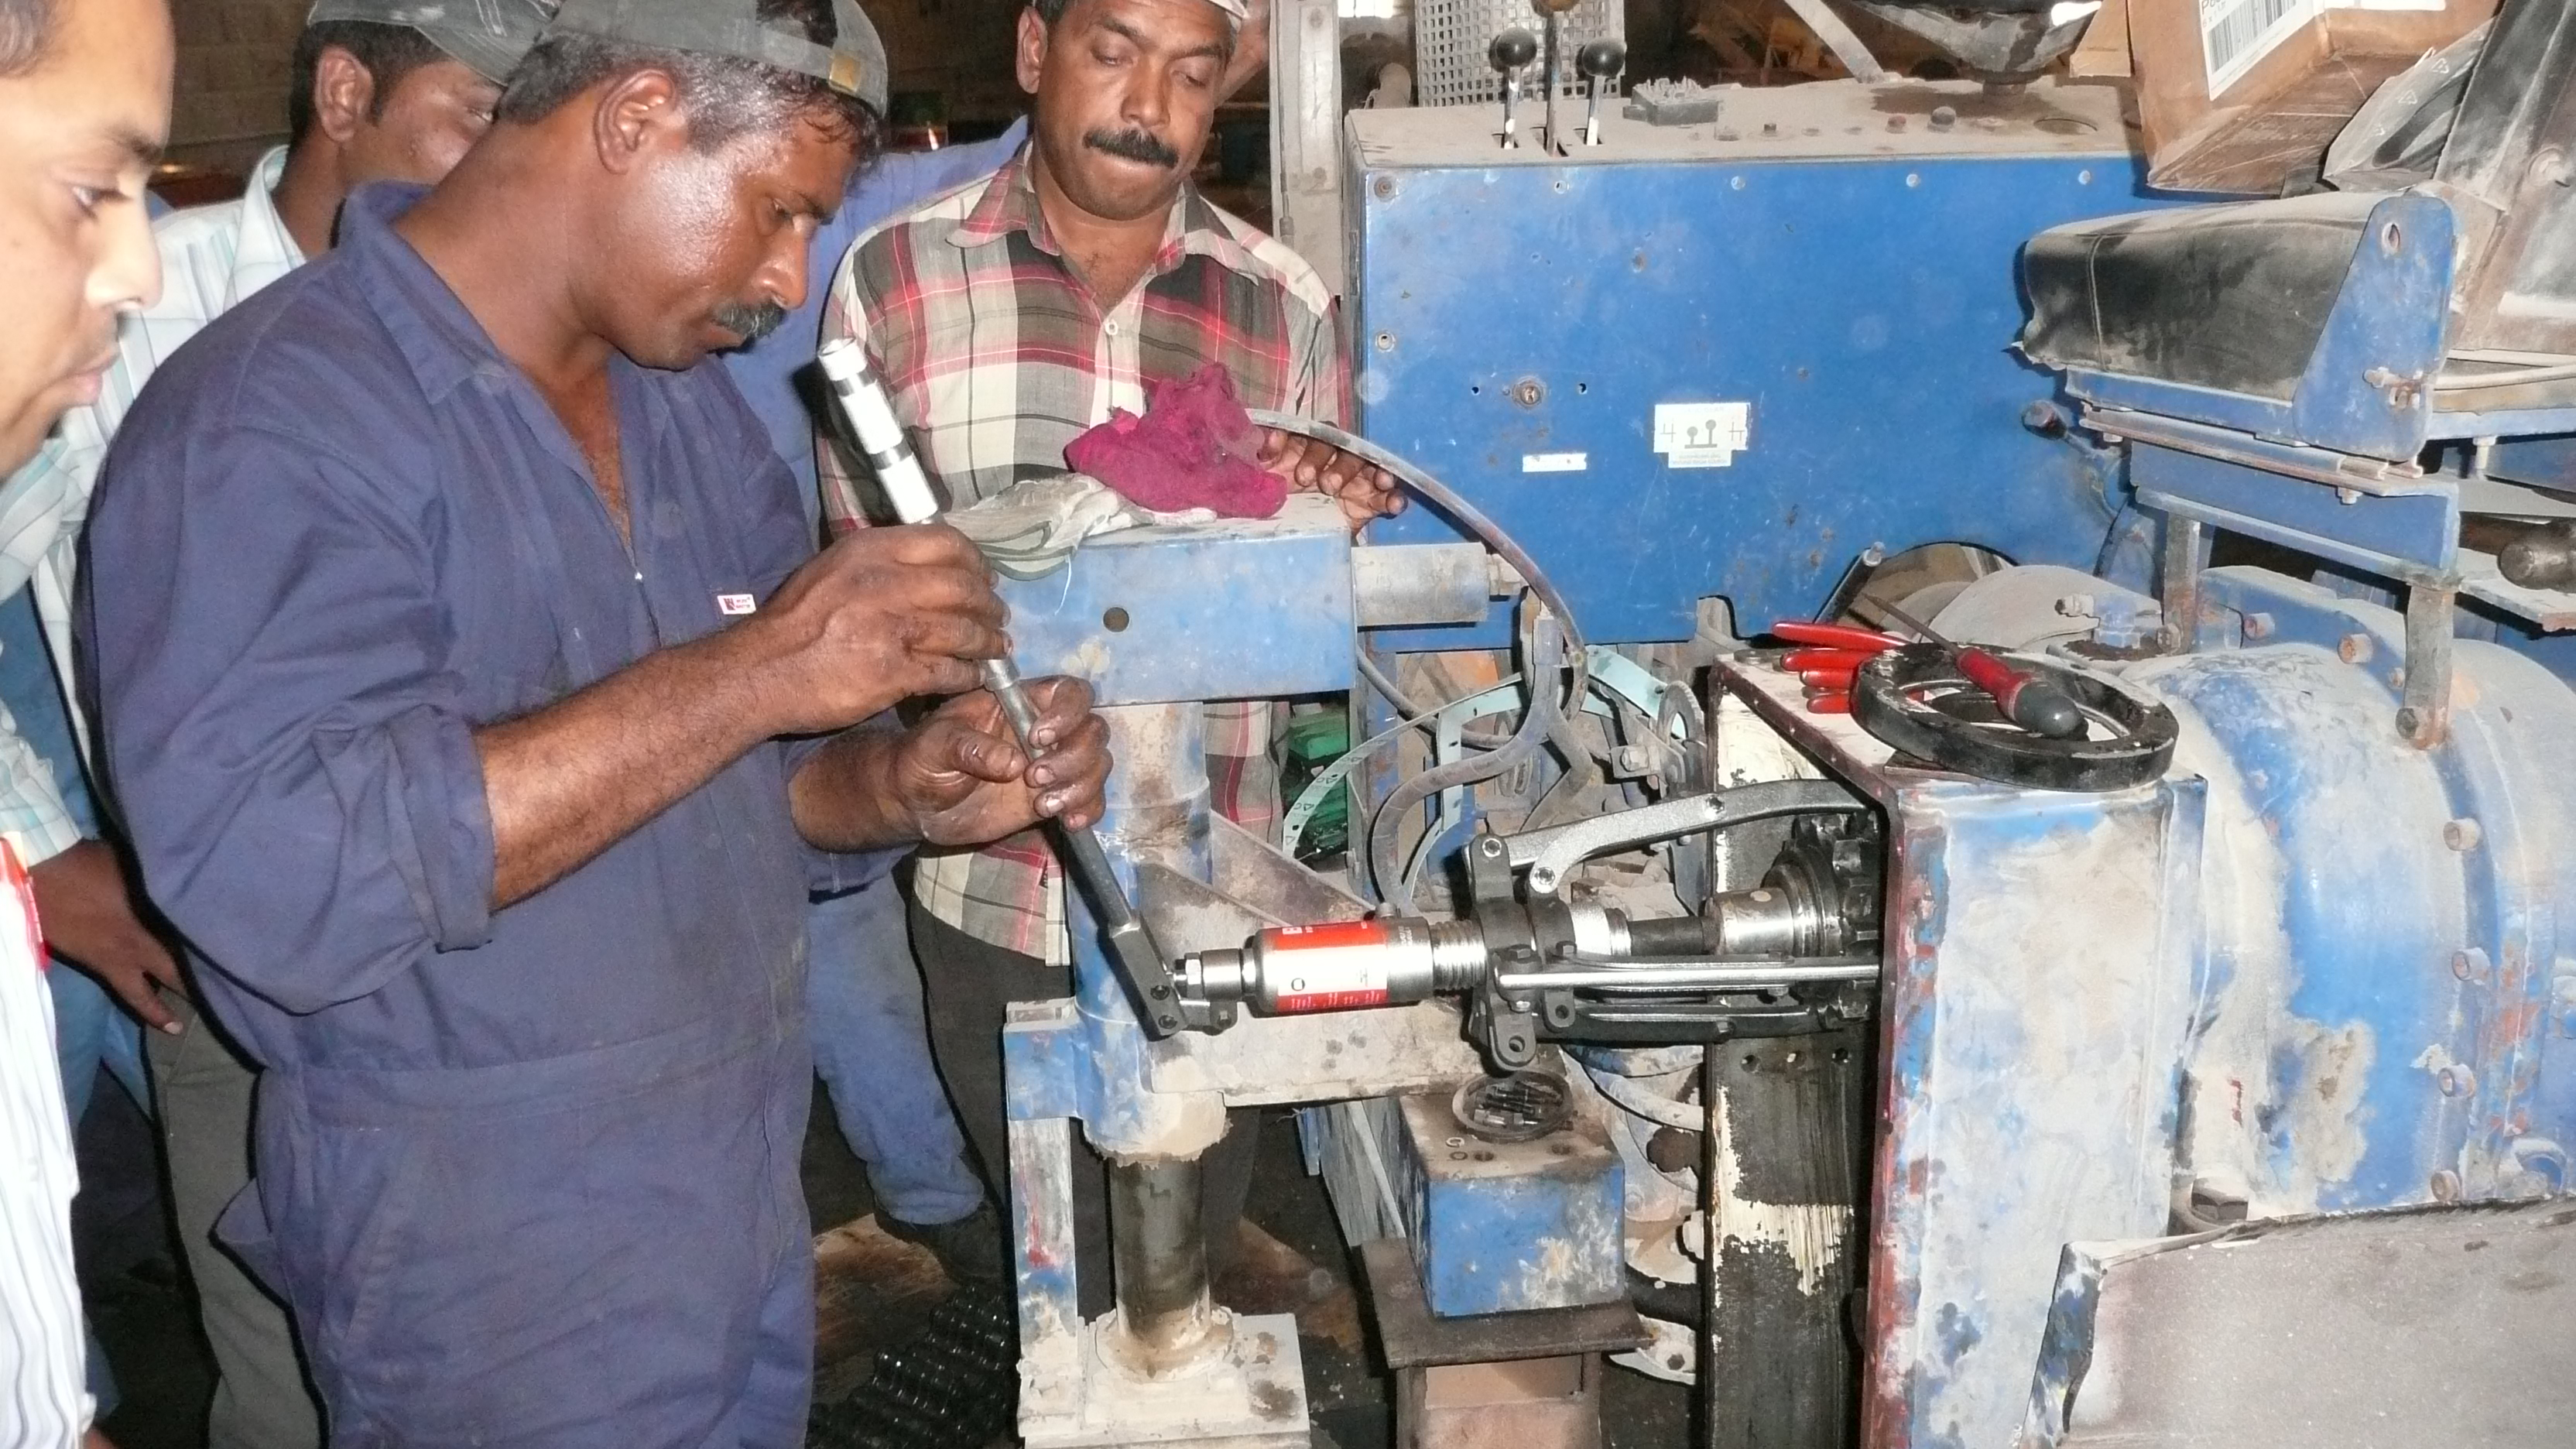 Betex self centering puller removing a bearing